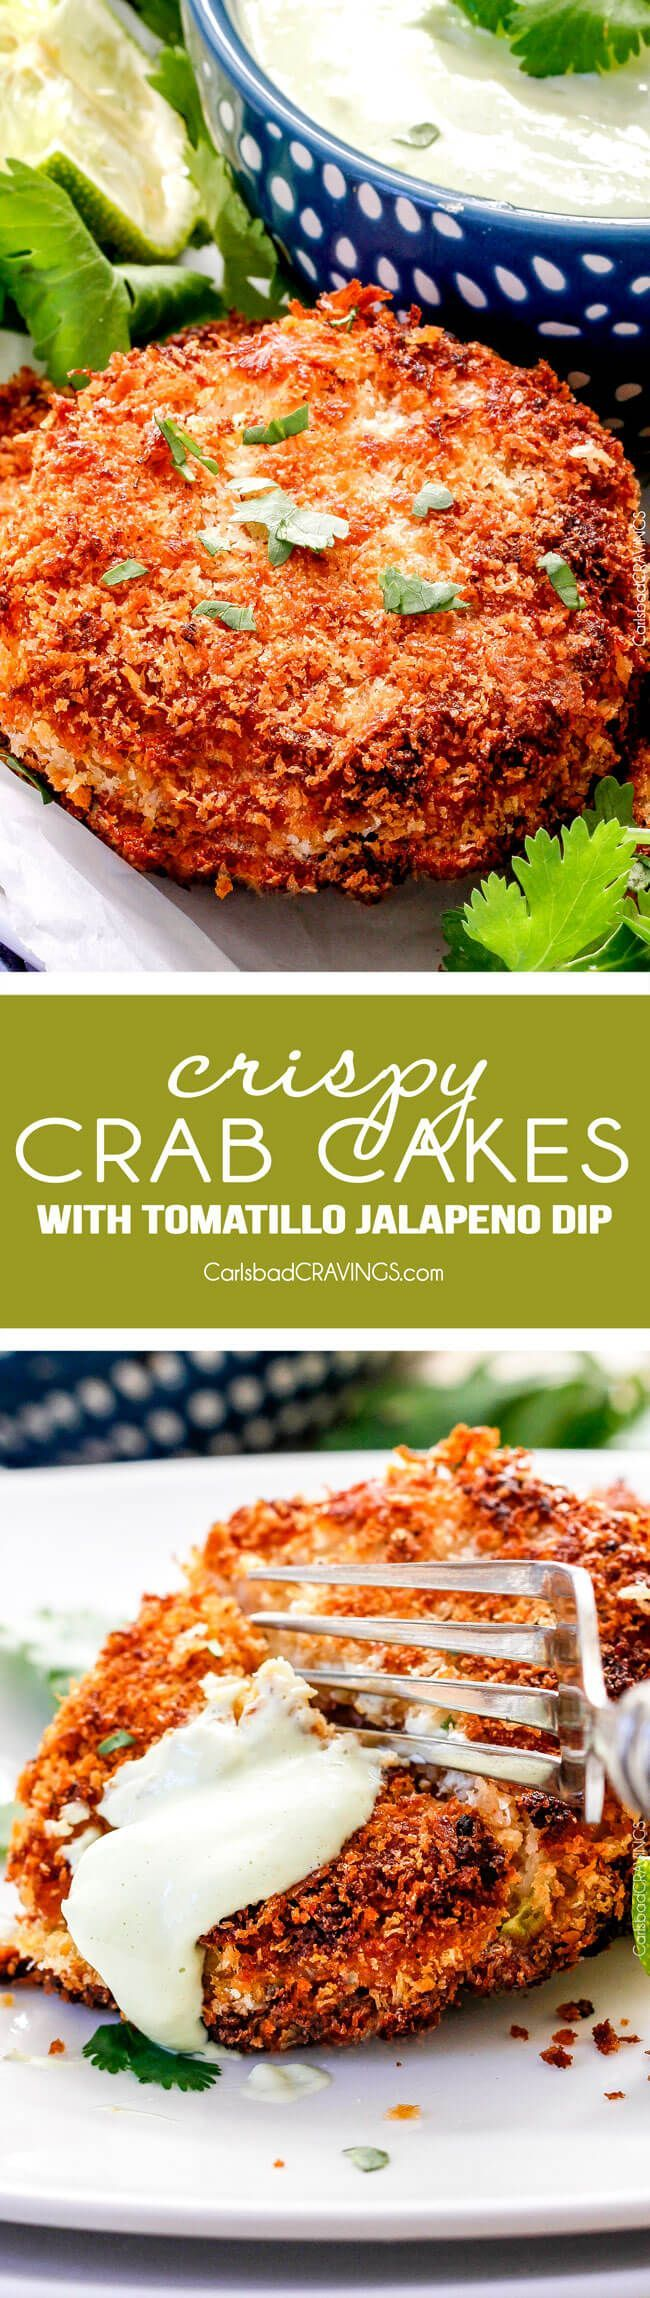 Easy, extra crispy, restaurant quality Crab Cakes right in your own home! Crispy on the outside, moist, juicy, flavor packed on the inside with the BEST DIP ever!!  You can also make ahead of time for stress free appetizers!  via /carlsbadcraving/